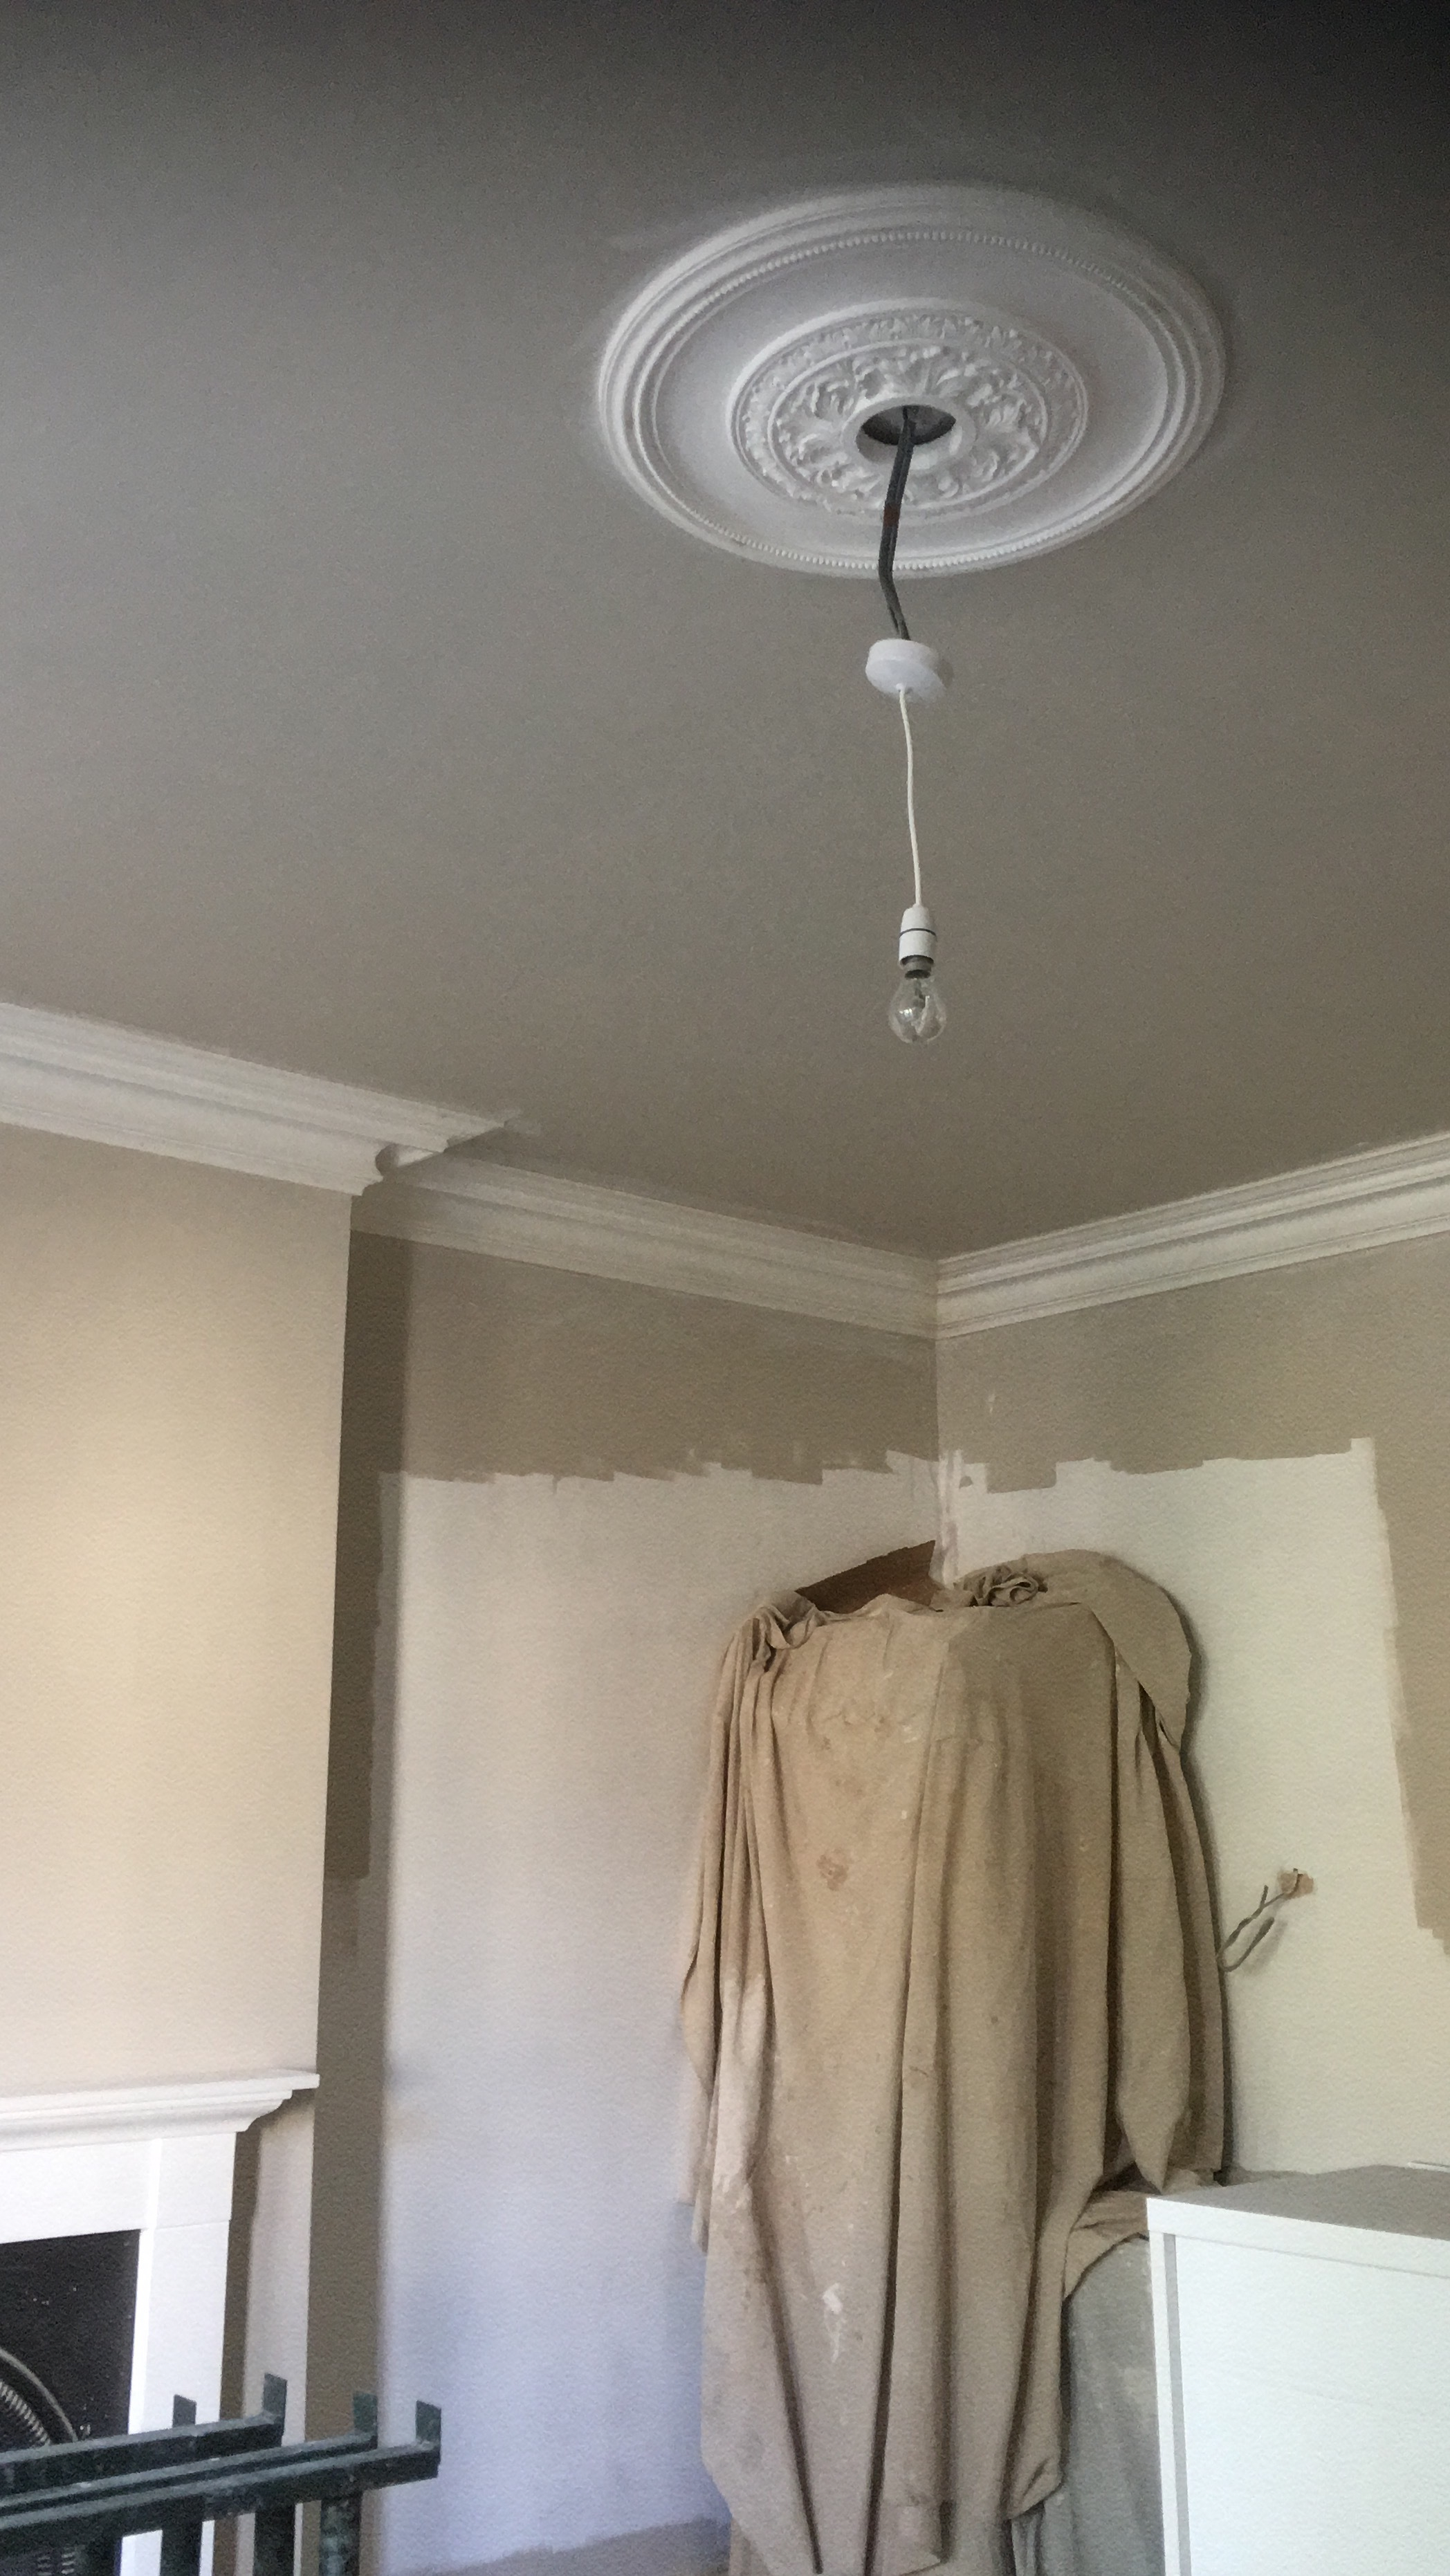 Cornicing and rose fitted by Manor Ceilings